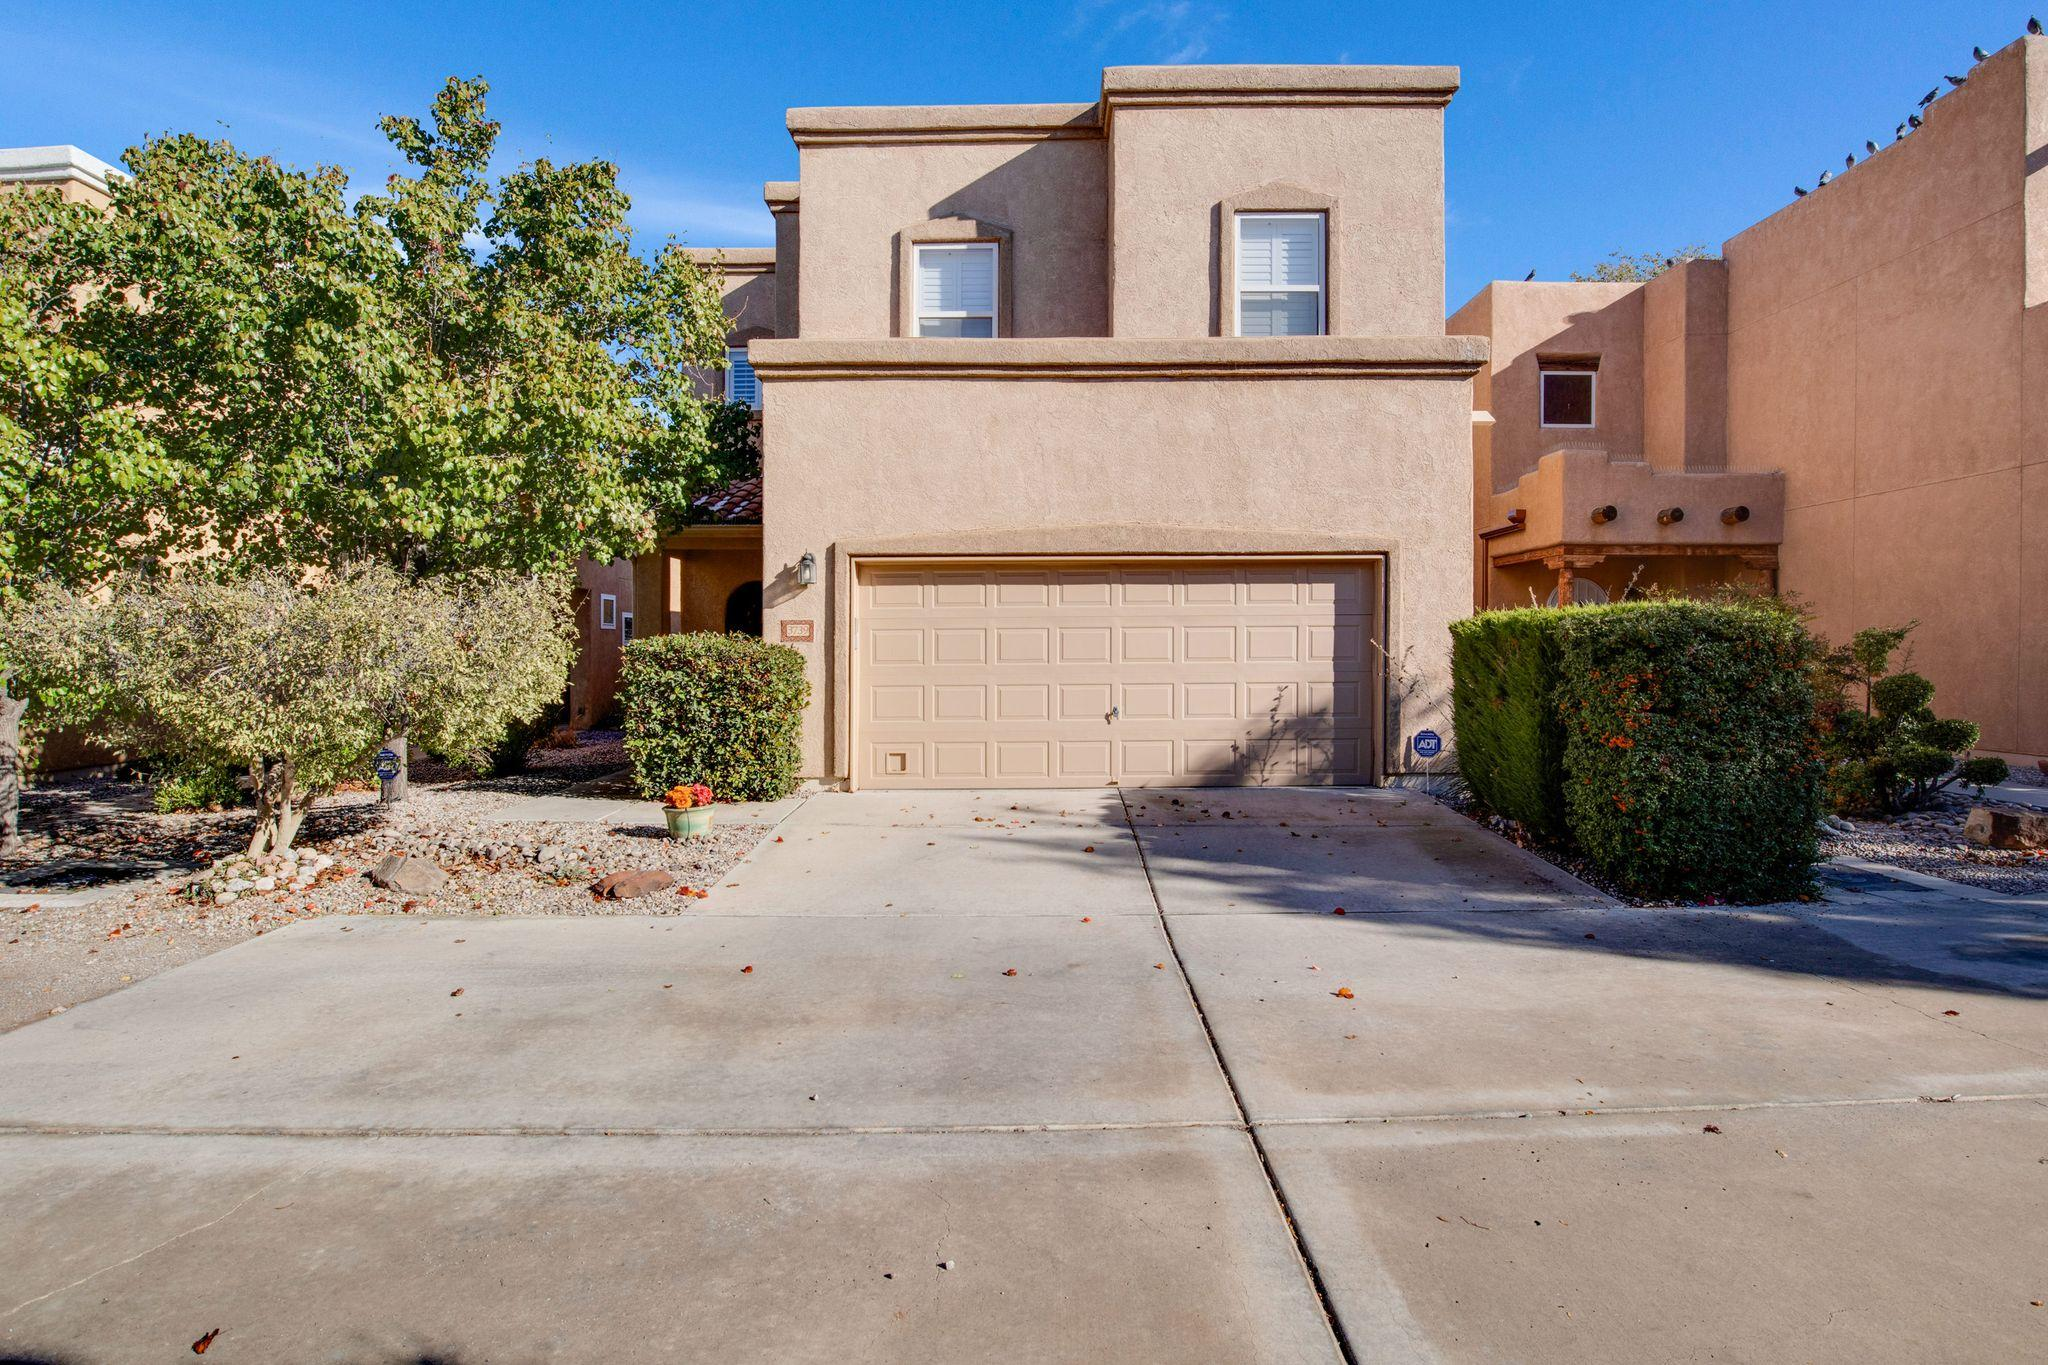 Located in the gated community of Los Candelarias in the heart of the North Valley! Close to shopping, downtown and UNM. Newly updated kitchen includes granite counters, faucet, double oven, dishwasher, cooktop, microwave - all one month old! Newer carpet and HVAC. Main Floor Owners suite with walk-in closet, en-suite bath with double vanity, separate shower & garden tub!  Downstairs half bath for guests. Special touches throughout such as custom paint, plantation shutters on all windows & back sliding door, nichos, wood beams and accents, custom front door, alarm system, electric fireplace for ambience. Upstairs there is a sizeable loft that could be used for an office or hobby space. Plenty of storage throughout and backyard shed stays!  HOA covers gate & trash/recycling pick up.